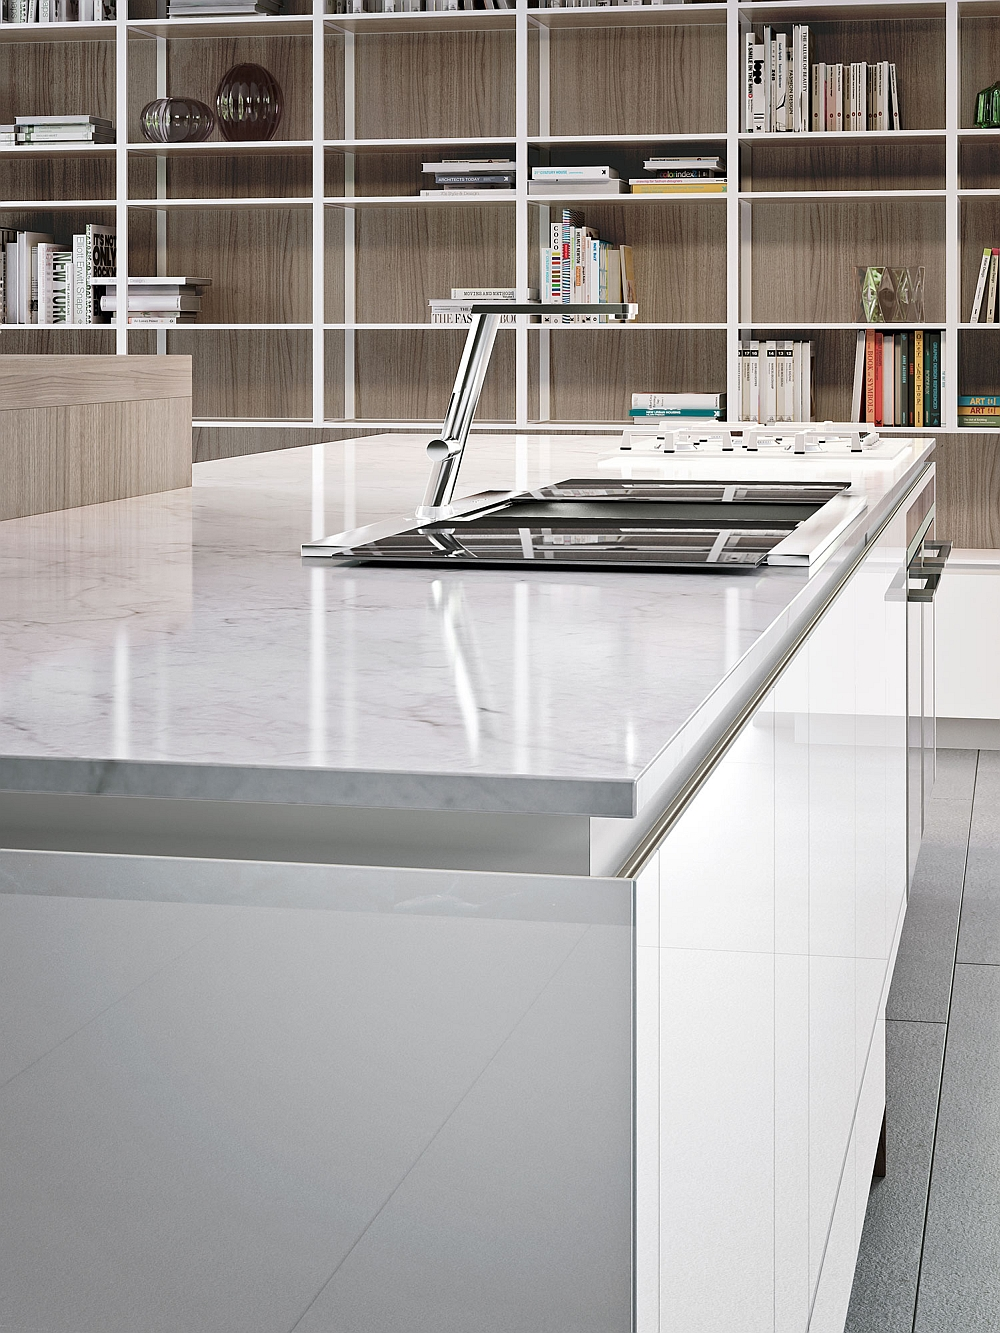 Fabulous contertop finishes give the smart Snaidero kitchen an urbane appeal